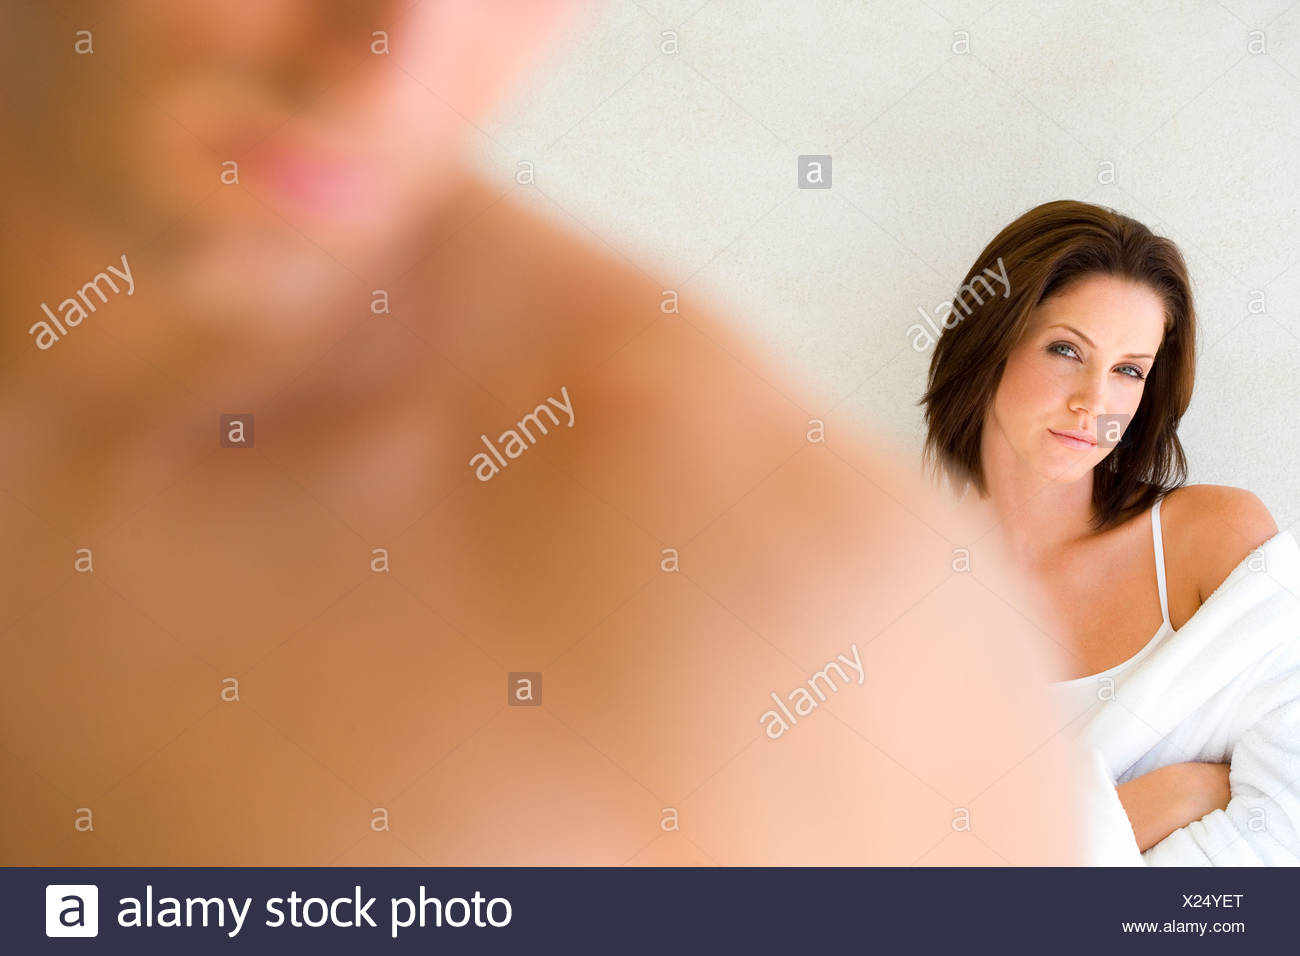 Young woman with arms folded, man in foreground differential focus - Stock Image